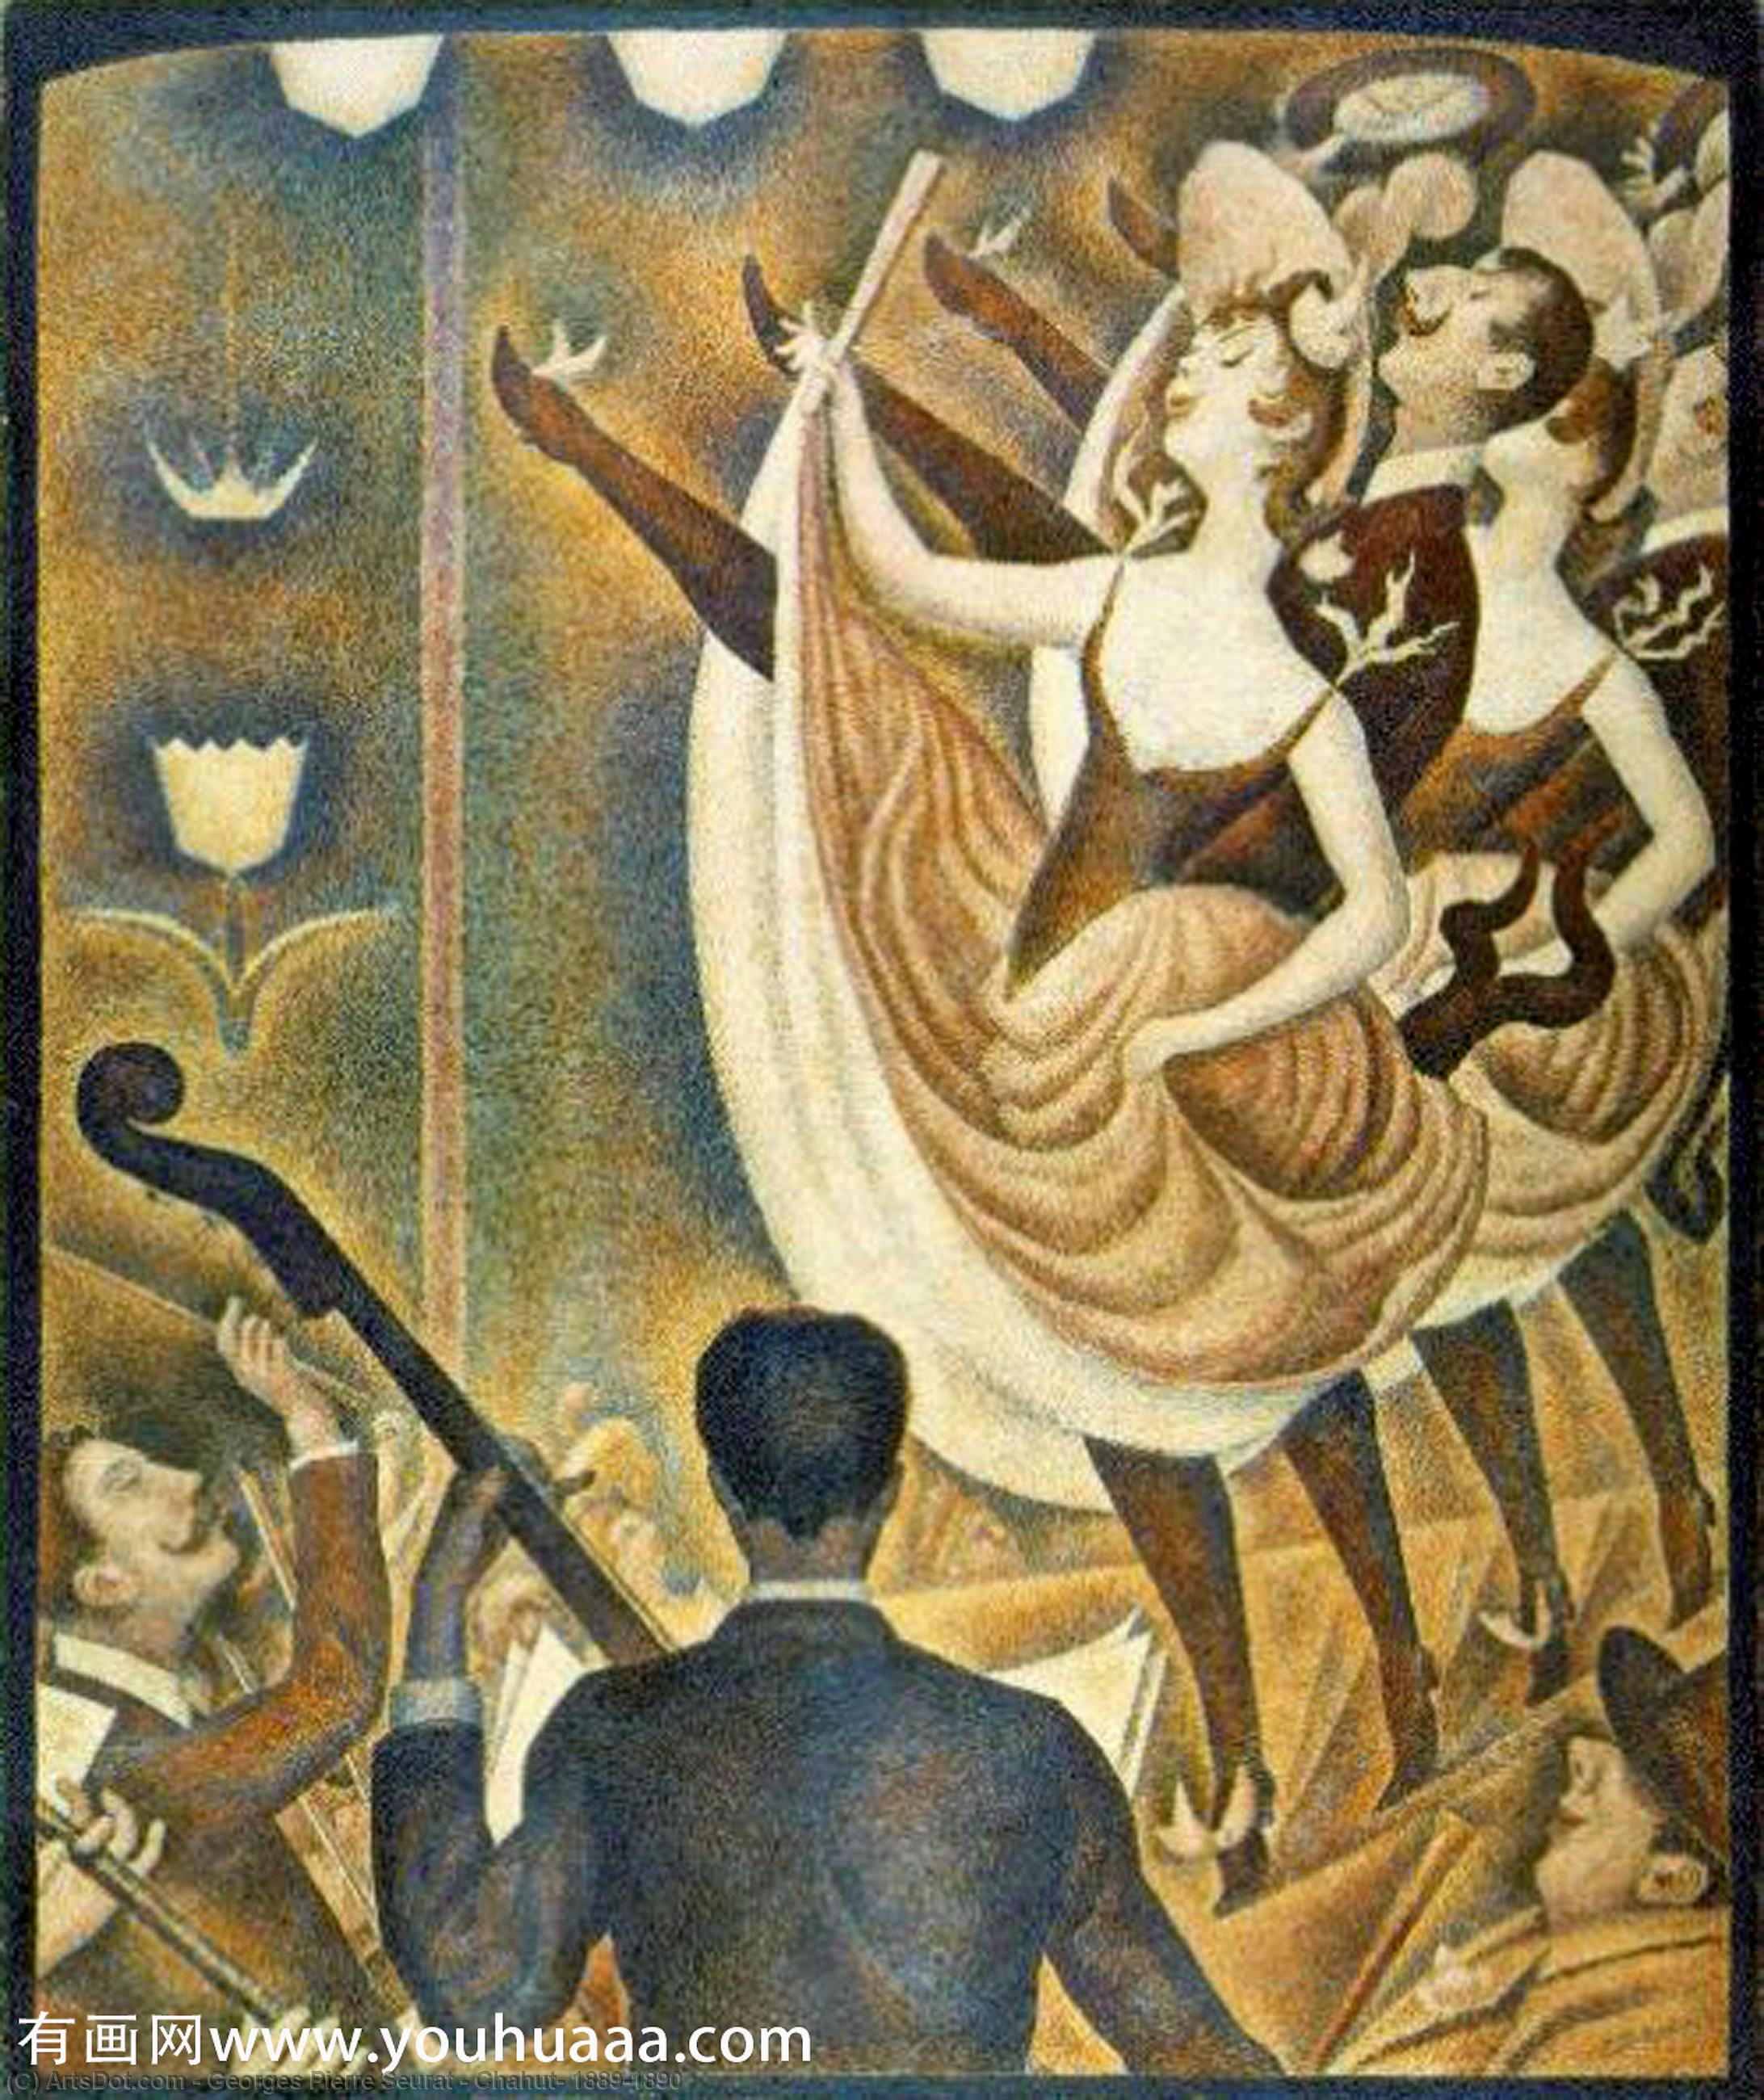 Wikioo.org - The Encyclopedia of Fine Arts - Painting, Artwork by Georges Pierre Seurat - Chahut, 1889-1890